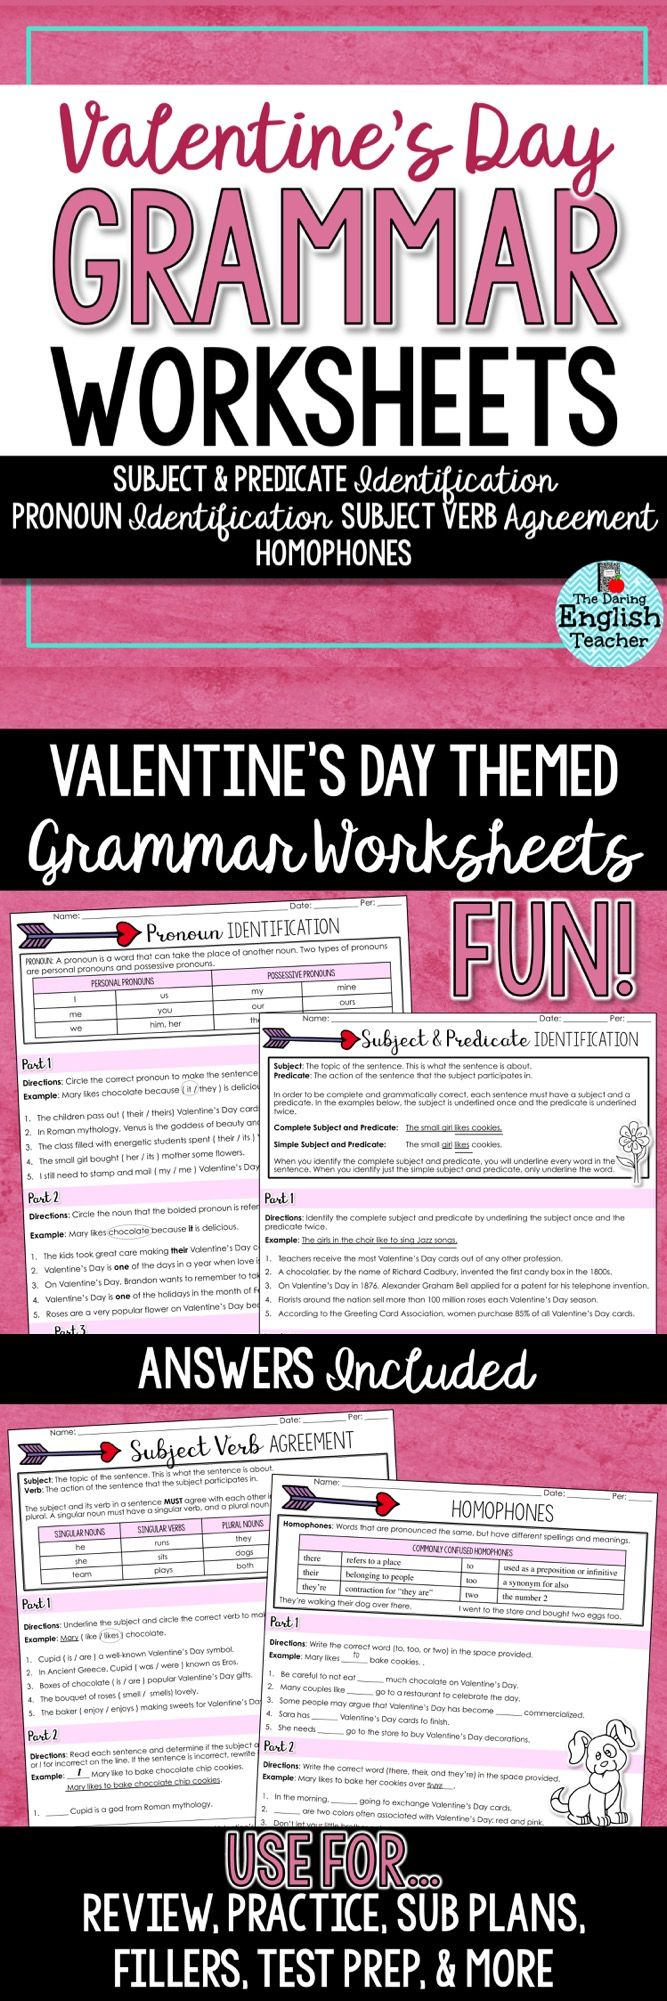 Valentine S Day Grammar Worksheets With Images Grammar Worksheets Middle School Writing School Worksheets [ 2001 x 667 Pixel ]